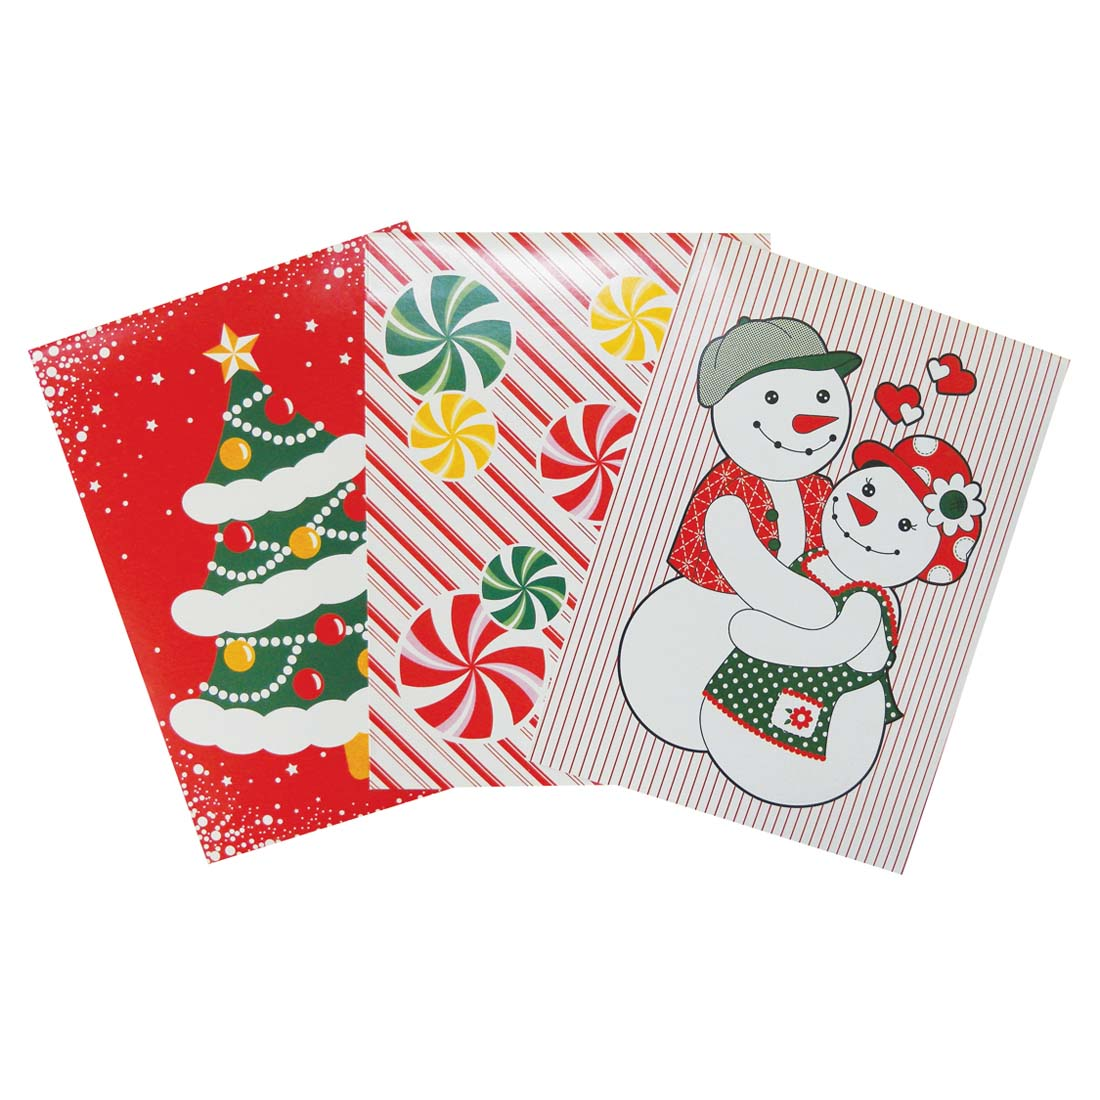 View CHRISTMAS GIFT BOX 3 PK 14.25 X 9.5 X 2 INCH MEDIUM ASSORTED DESIGNS